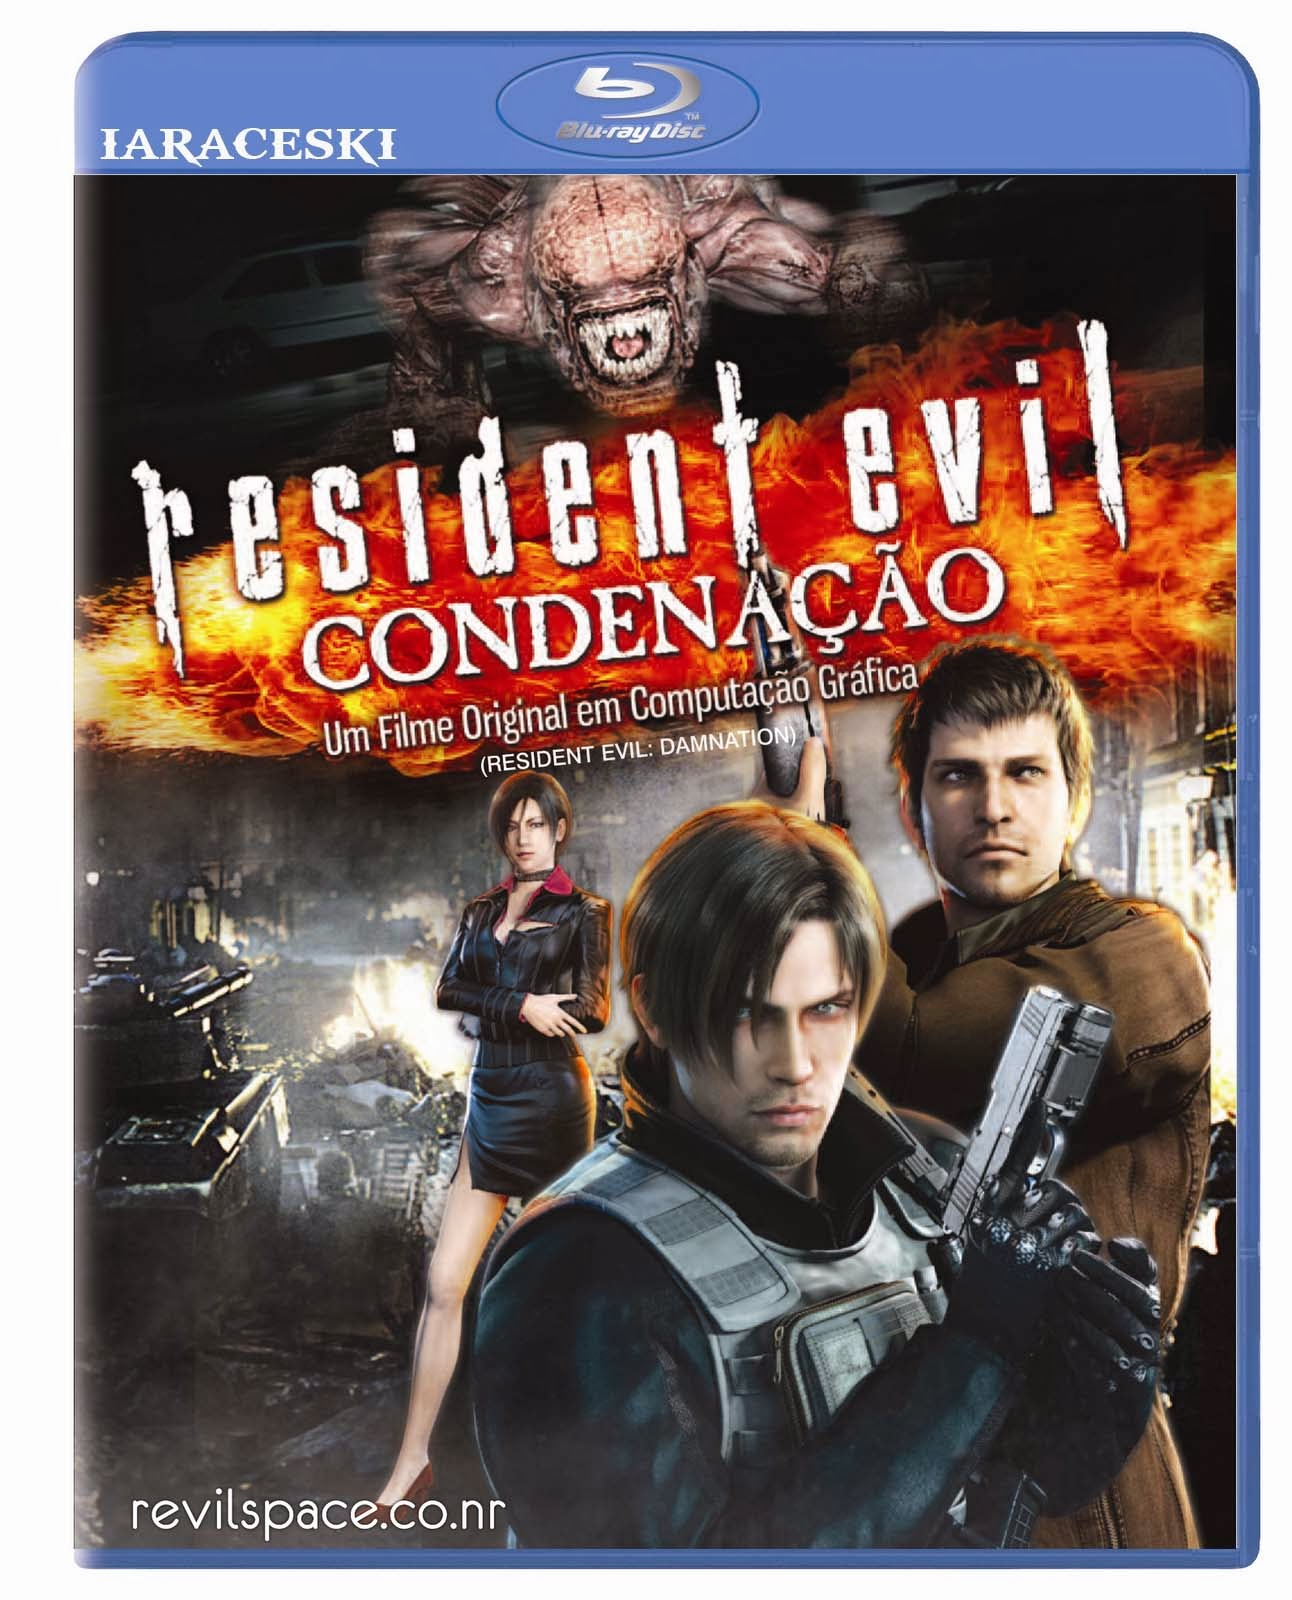 Download Resident Evil: Condenação (2012) BluRay 720p Dublado